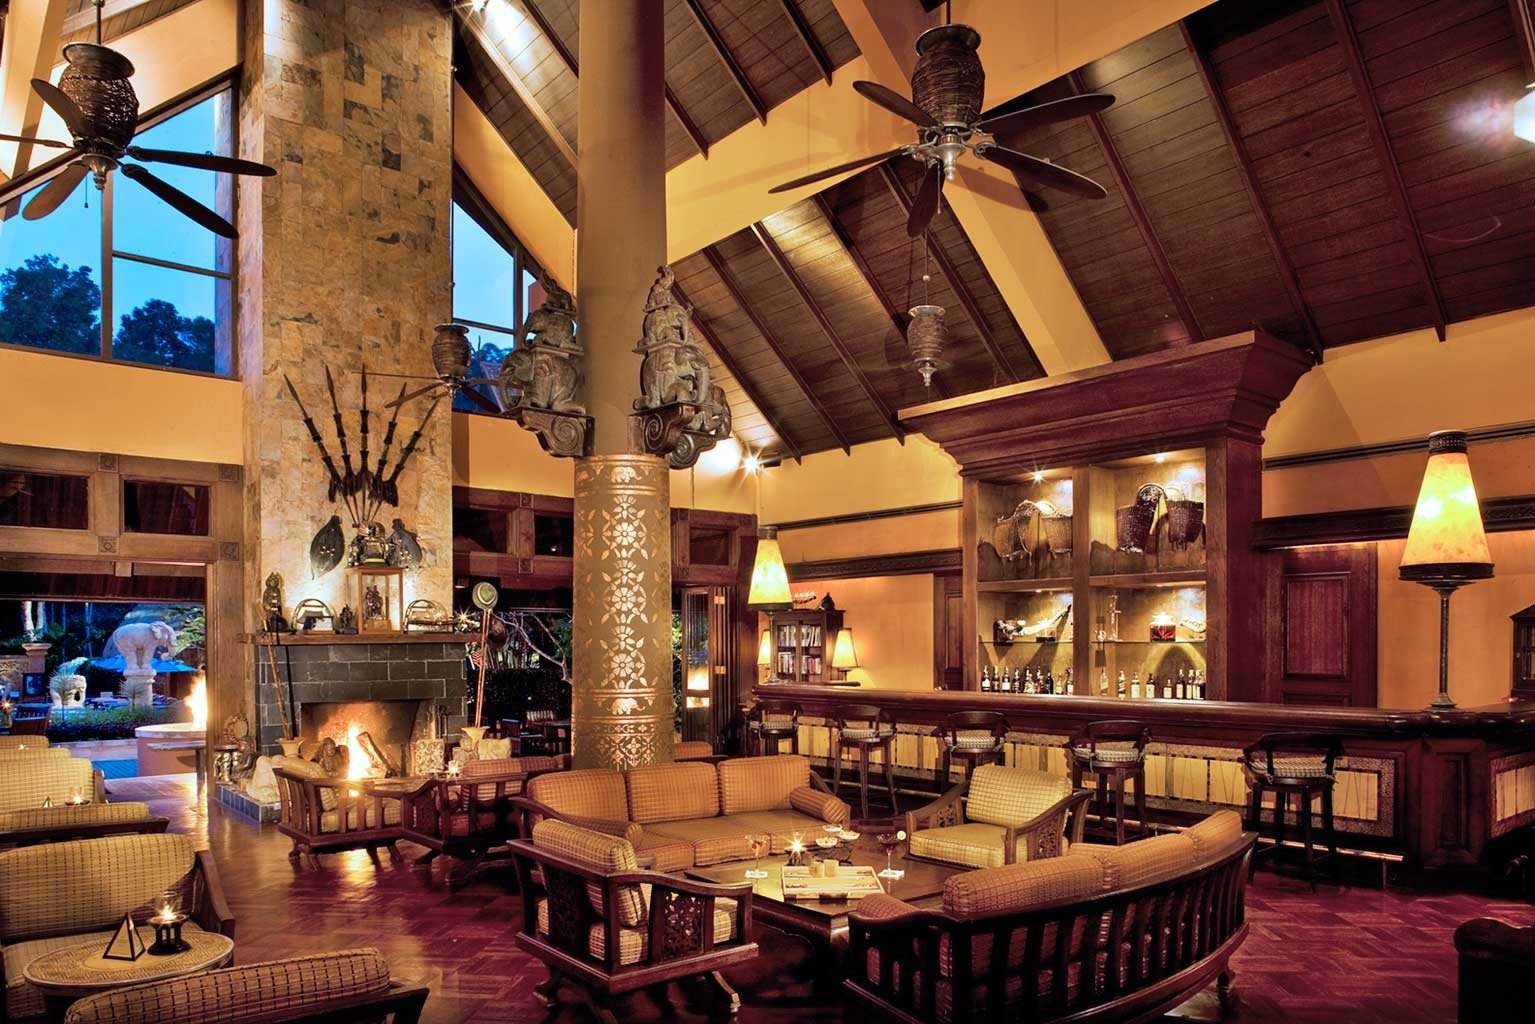 Elegant Lodge Lounge Scenic views Resort Lobby restaurant Bar mansion recreation room